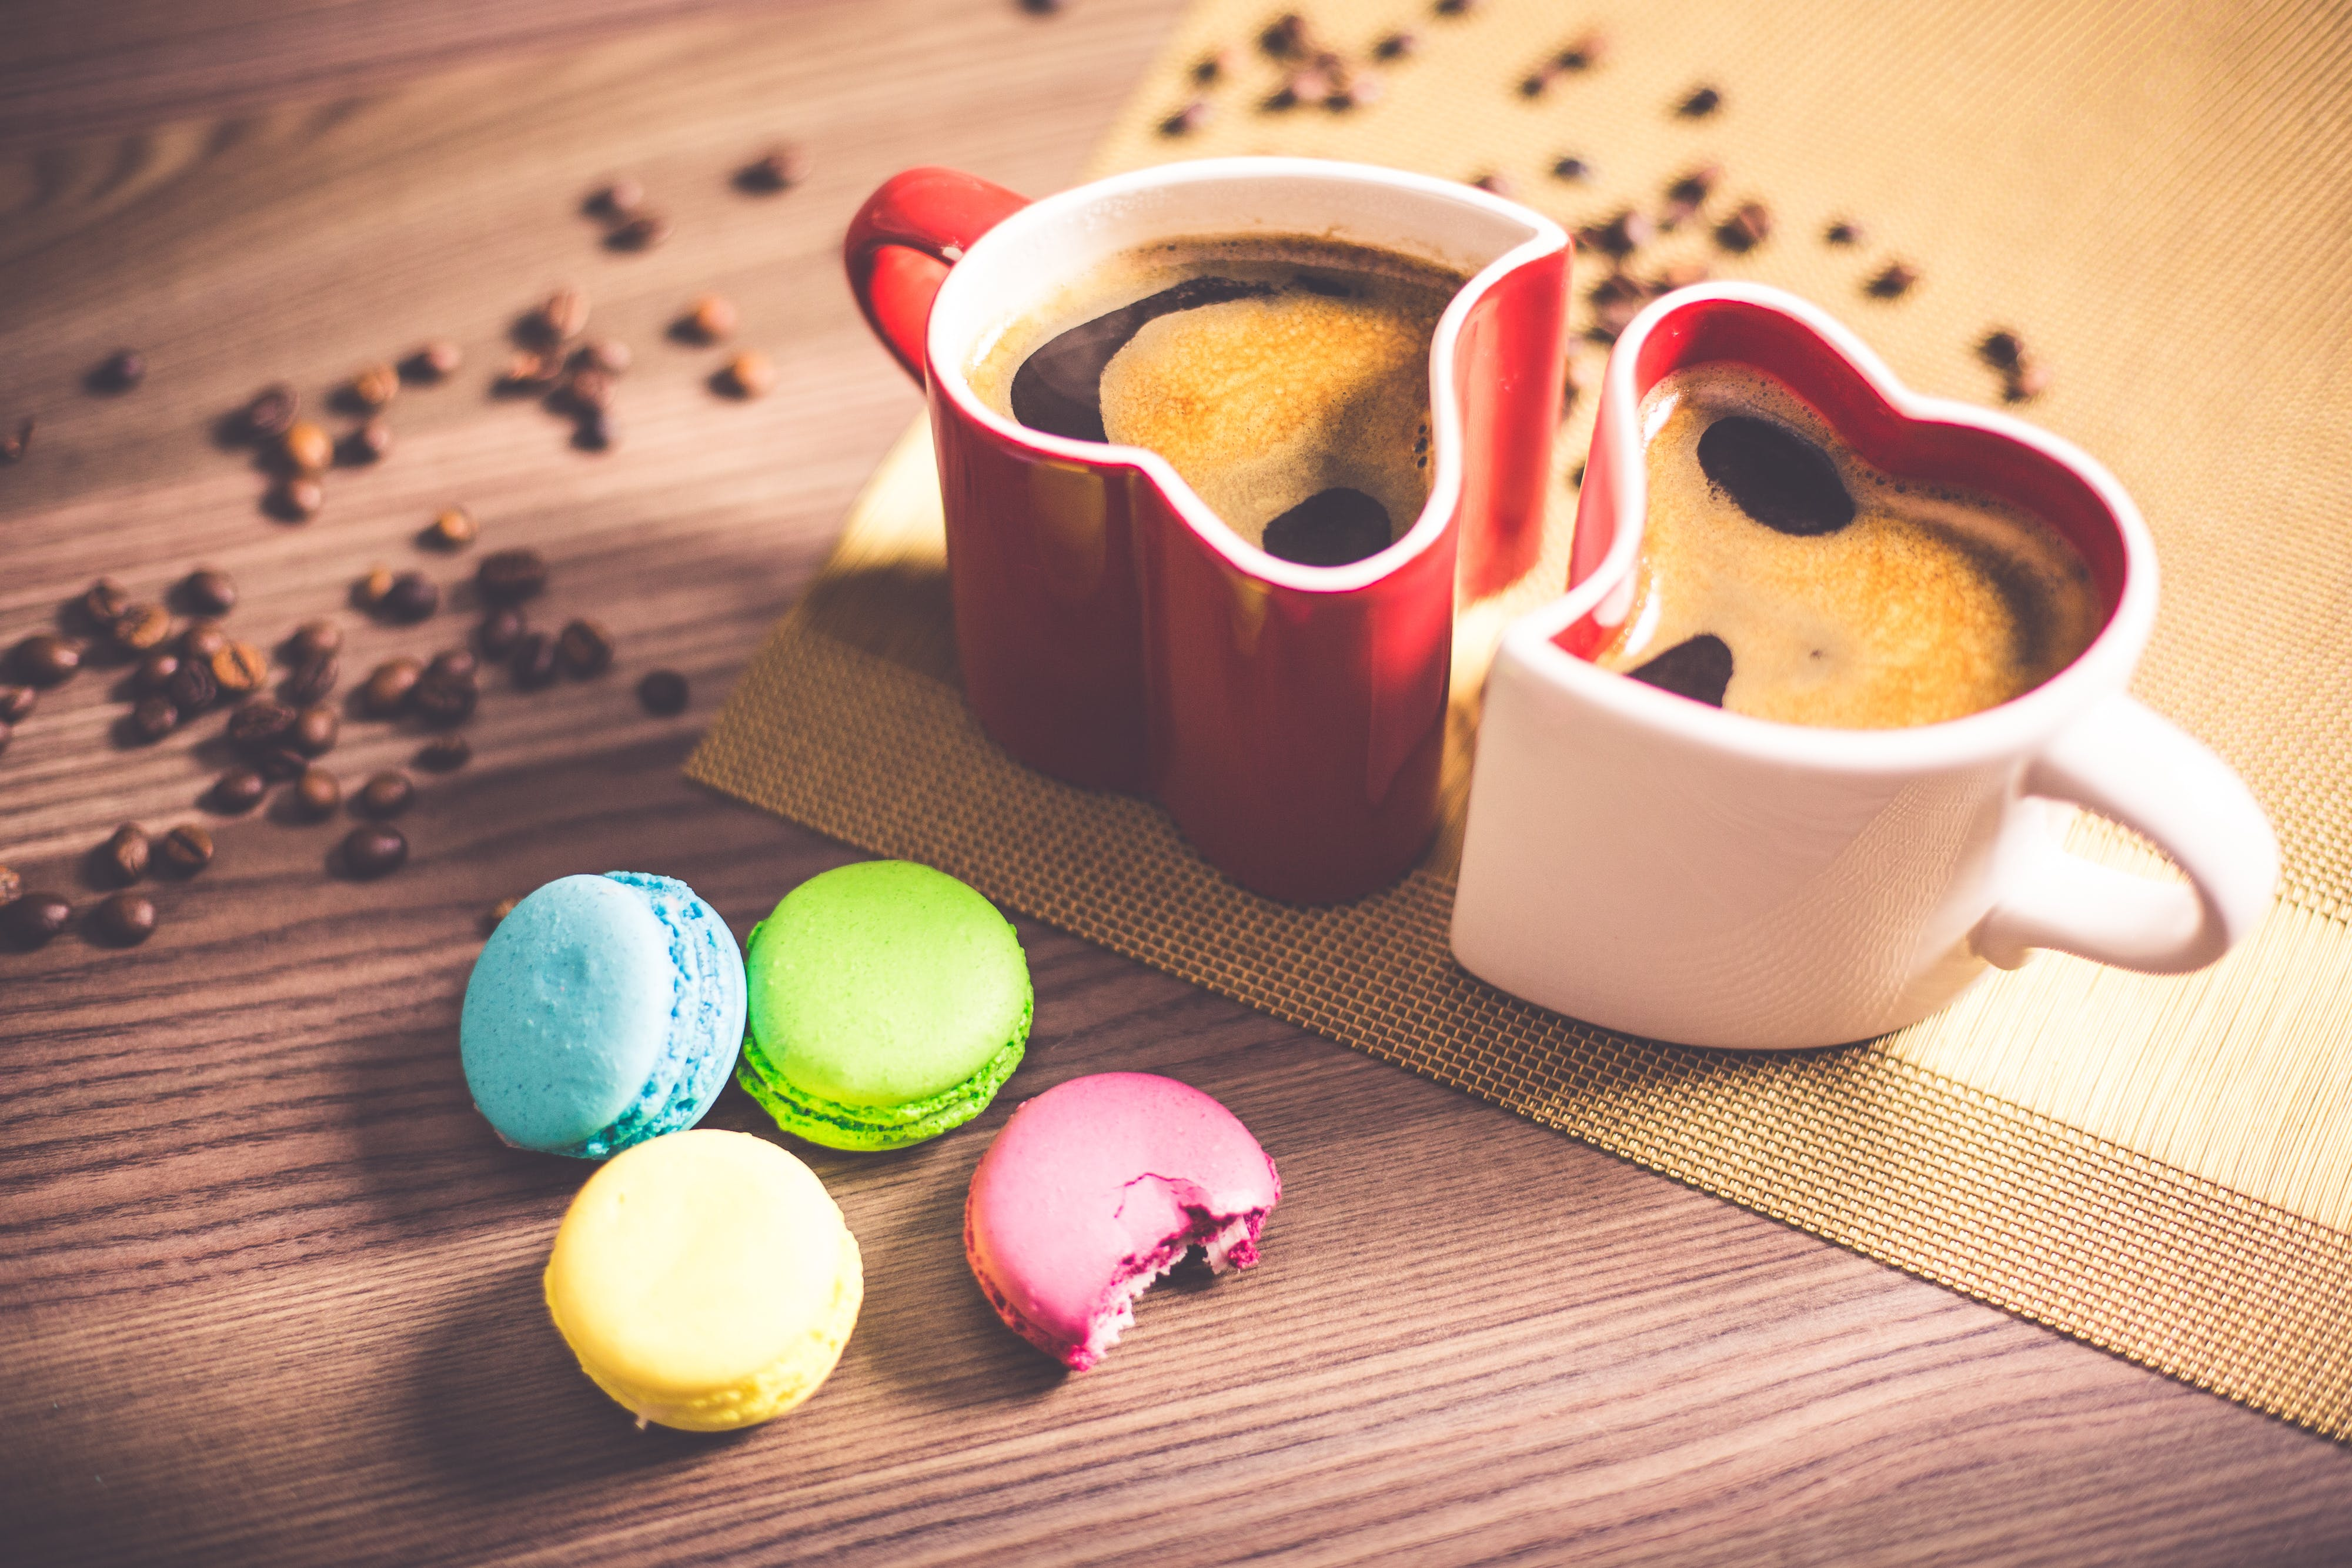 White and Red Couple Heart Mug Filled With Coffee And Macaroons